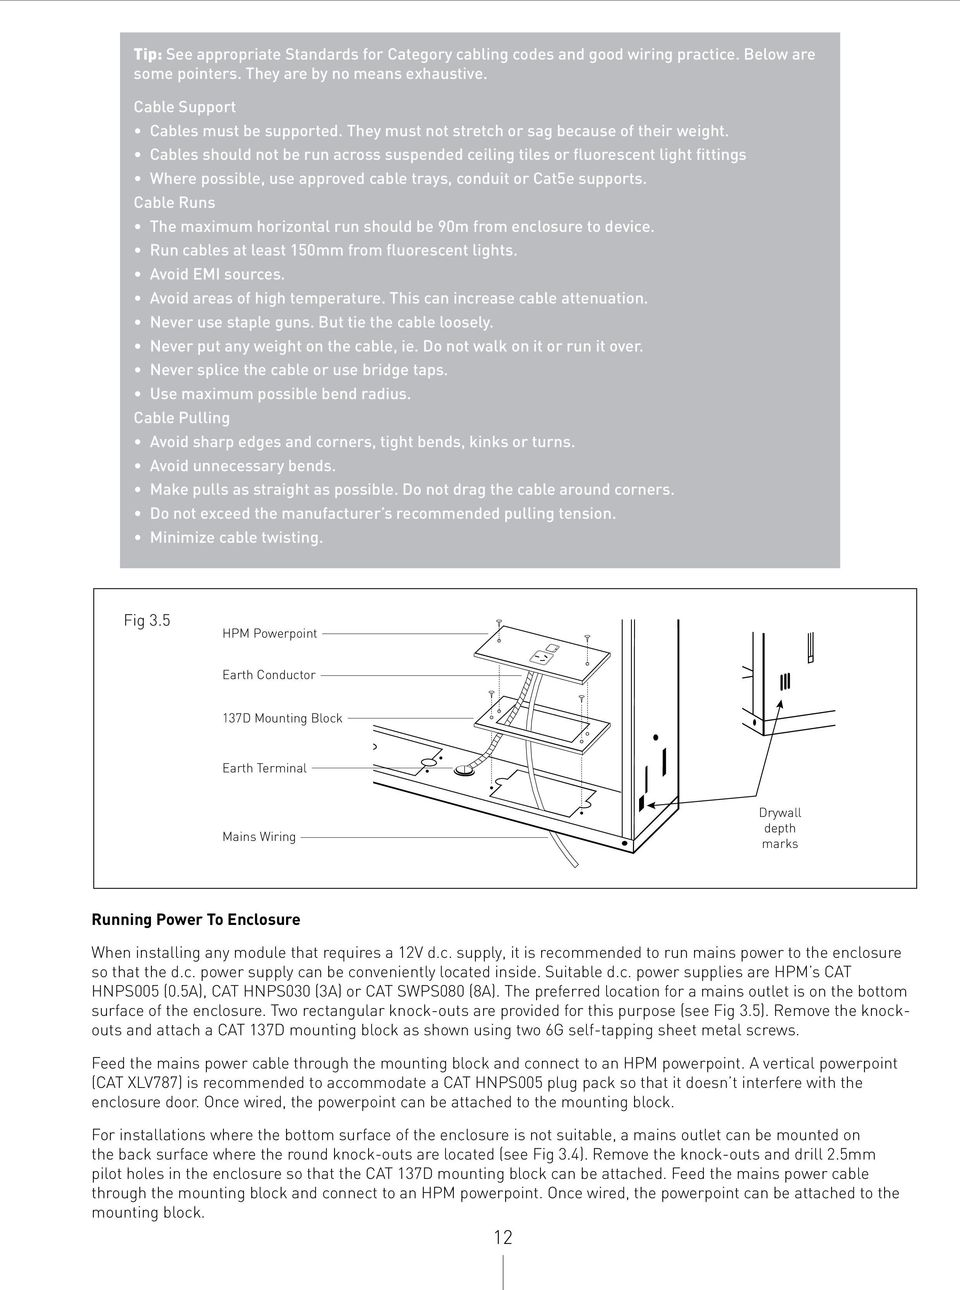 Hpm Home Networks Installation Manual Pdf Commercial Wiring Powerpoint Presentation Cables Should Not Be Run Across Suspended Ceiling Tiles Or Fluorescent Light Fittings Where Possible